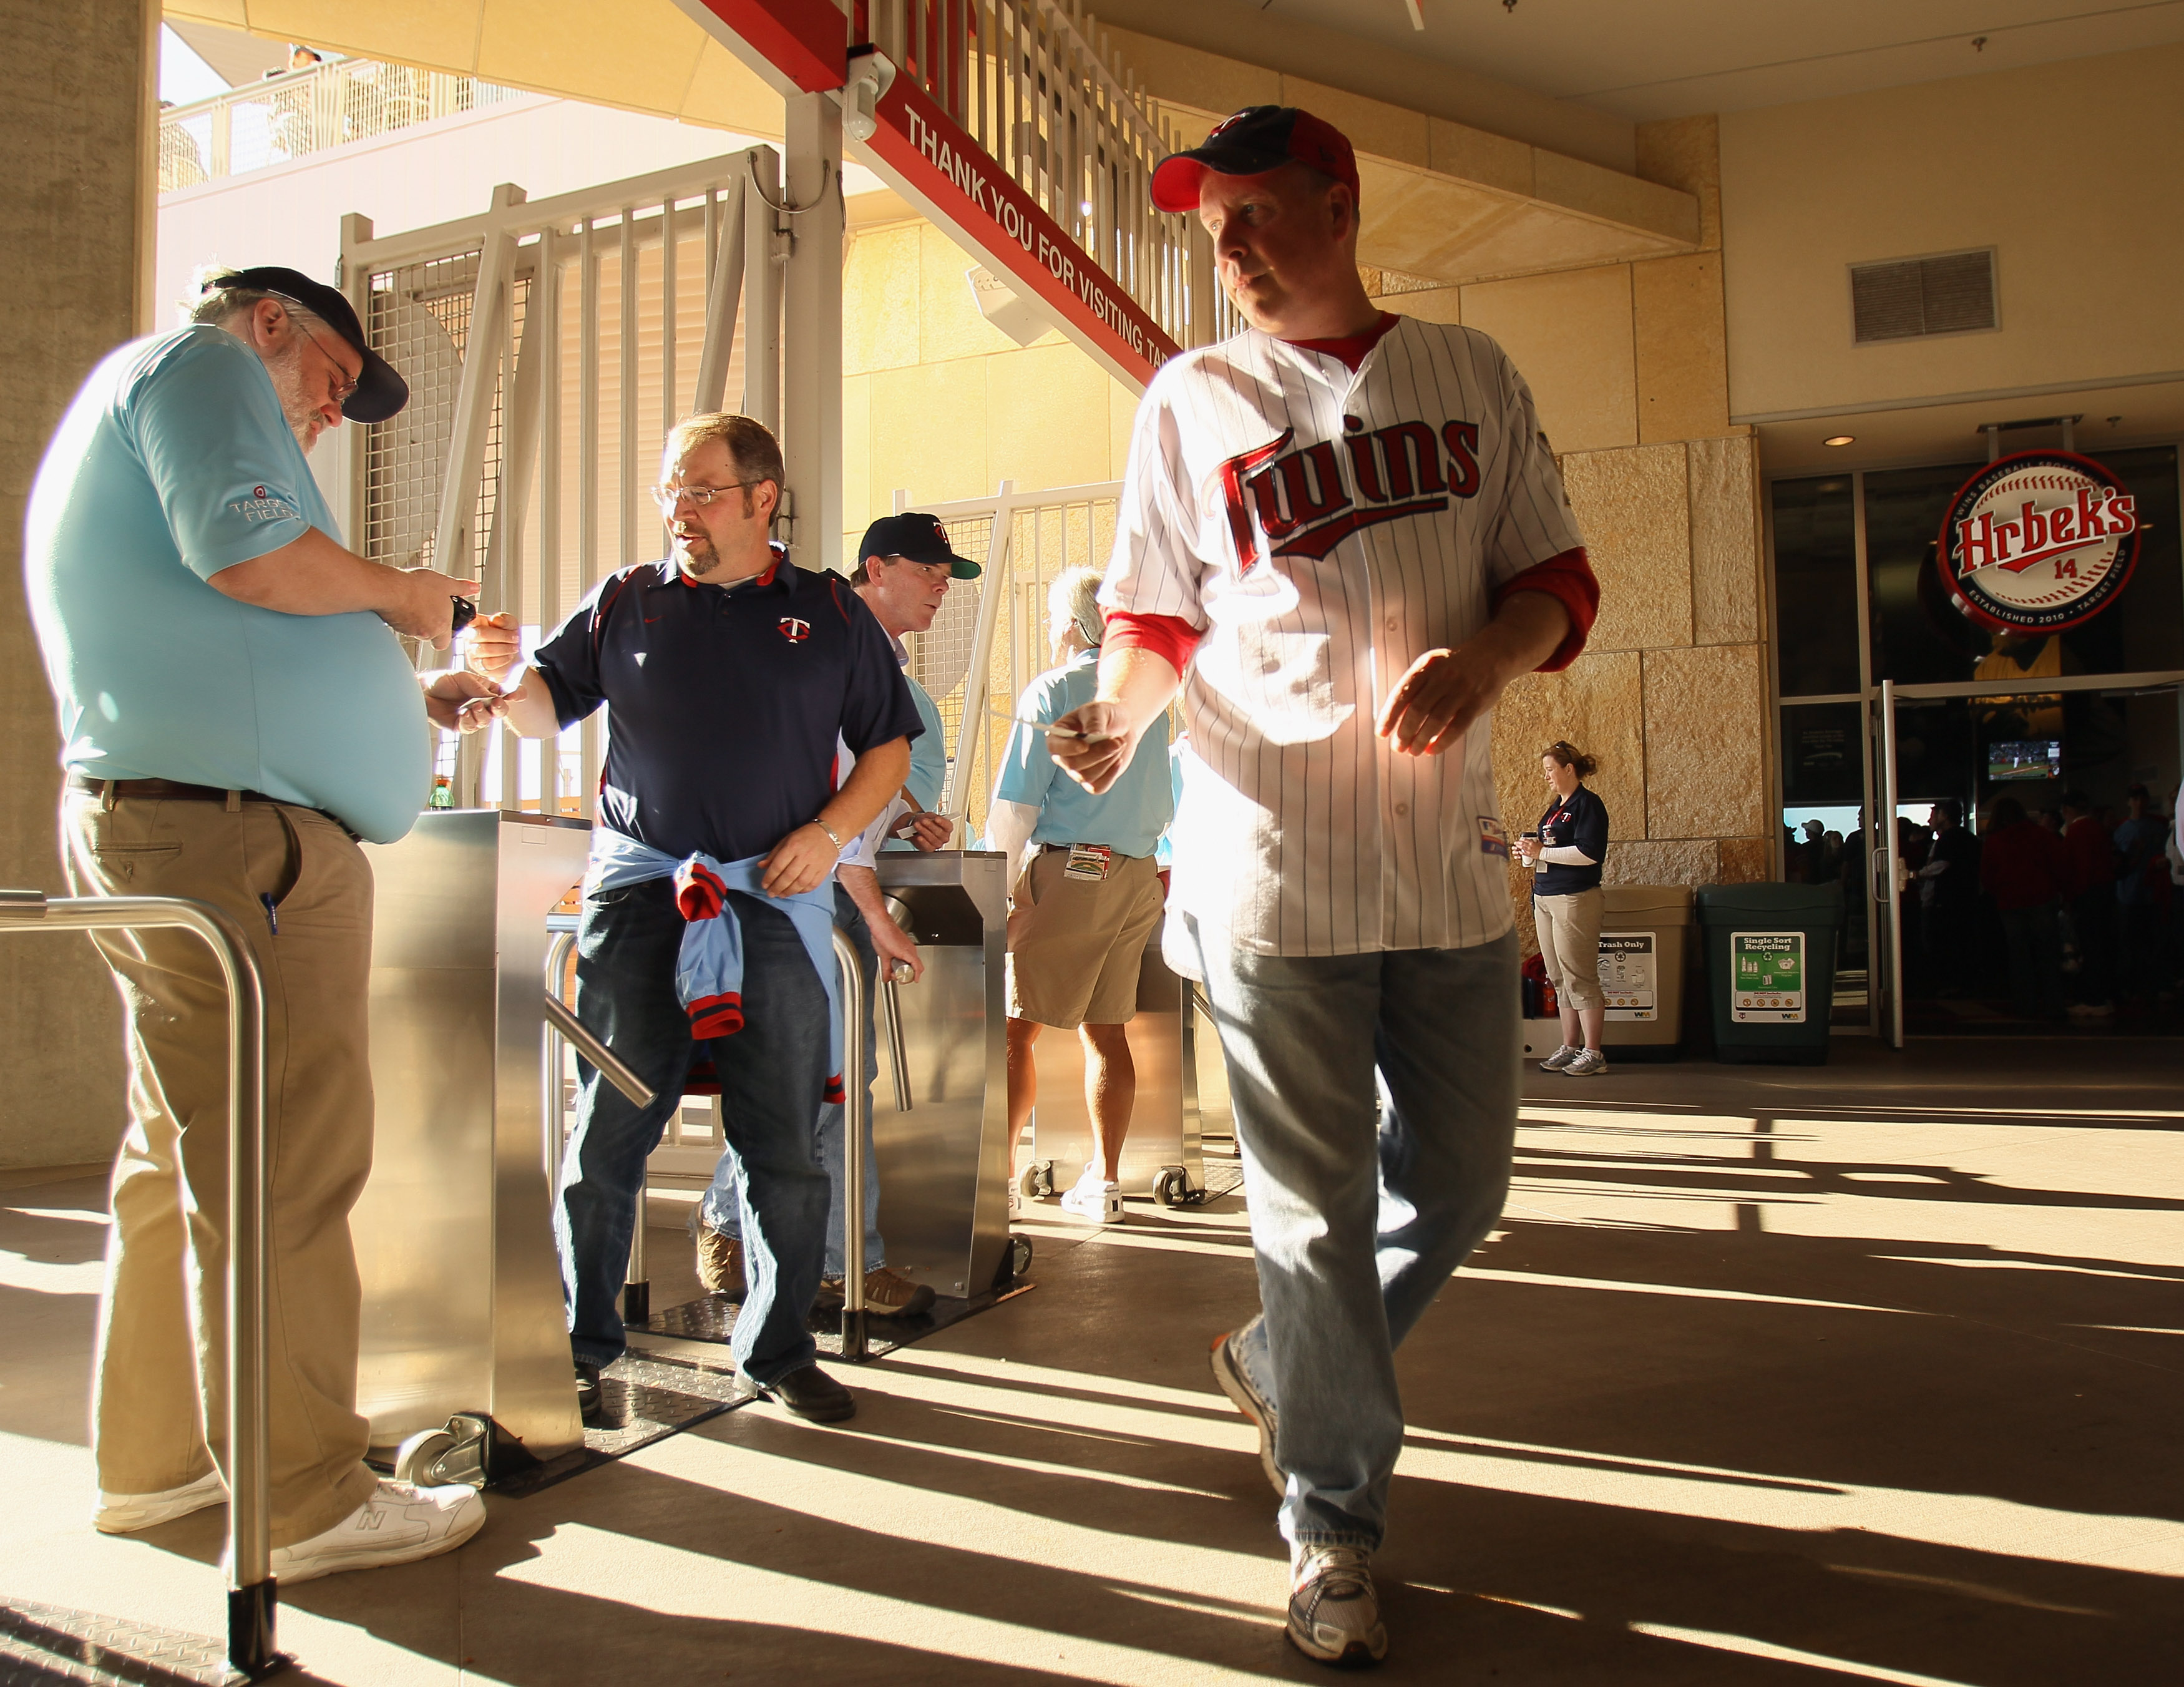 MINNEAPOLIS - OCTOBER 07:  Fans enter the stadium before the game between the Minnesota Twins and the New York Yankees for game two of the ALDS on October 7, 2010 at Target Field in Minneapolis, Minnesota.  (Photo by Elsa/Getty Images)